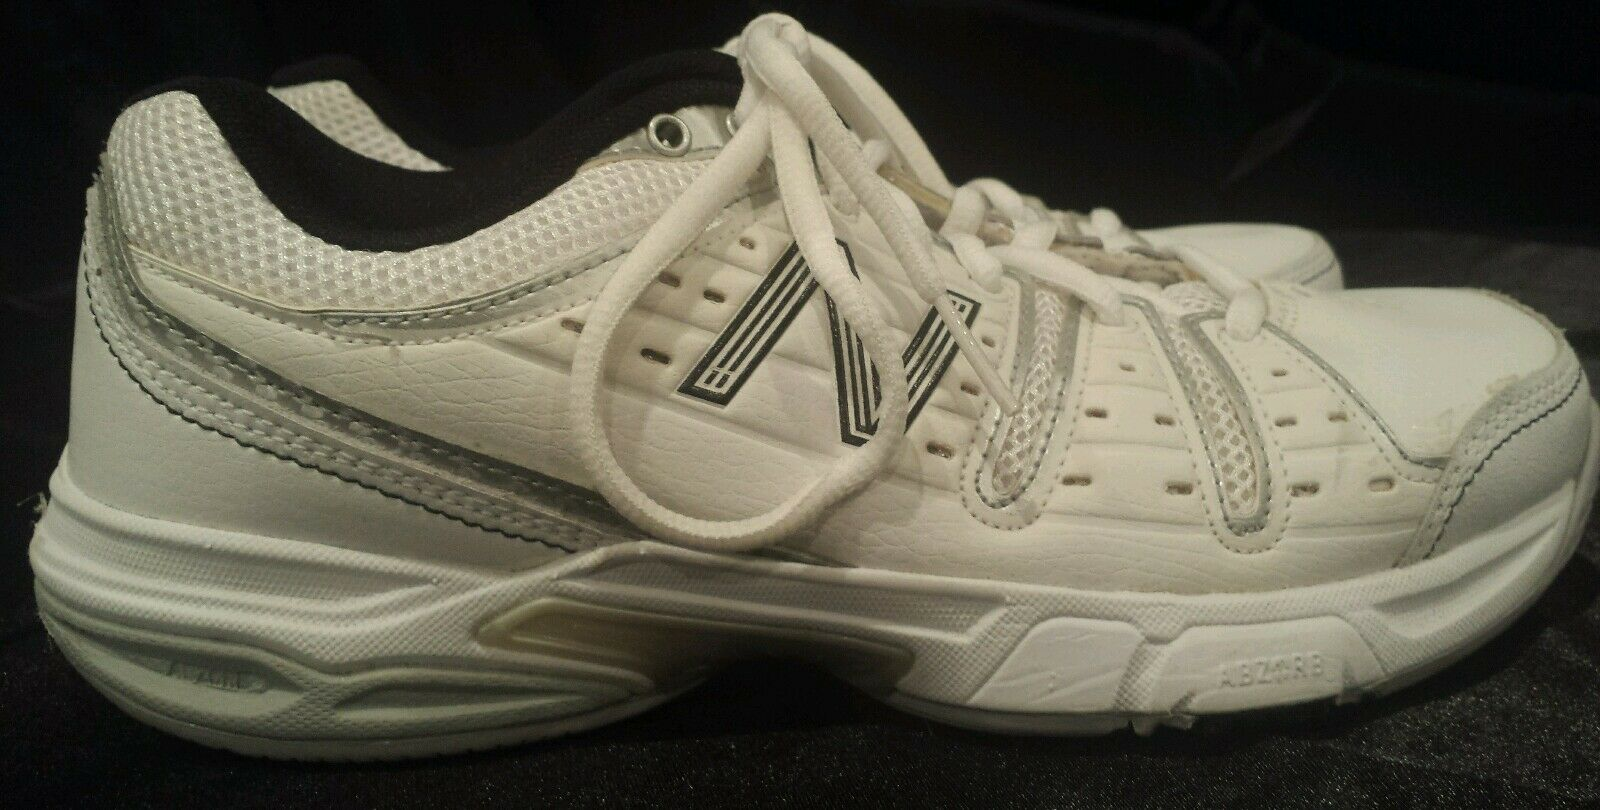 New Balance 656 Tennis shoes Womens shoes White Black WC656WS Size 6.5 B